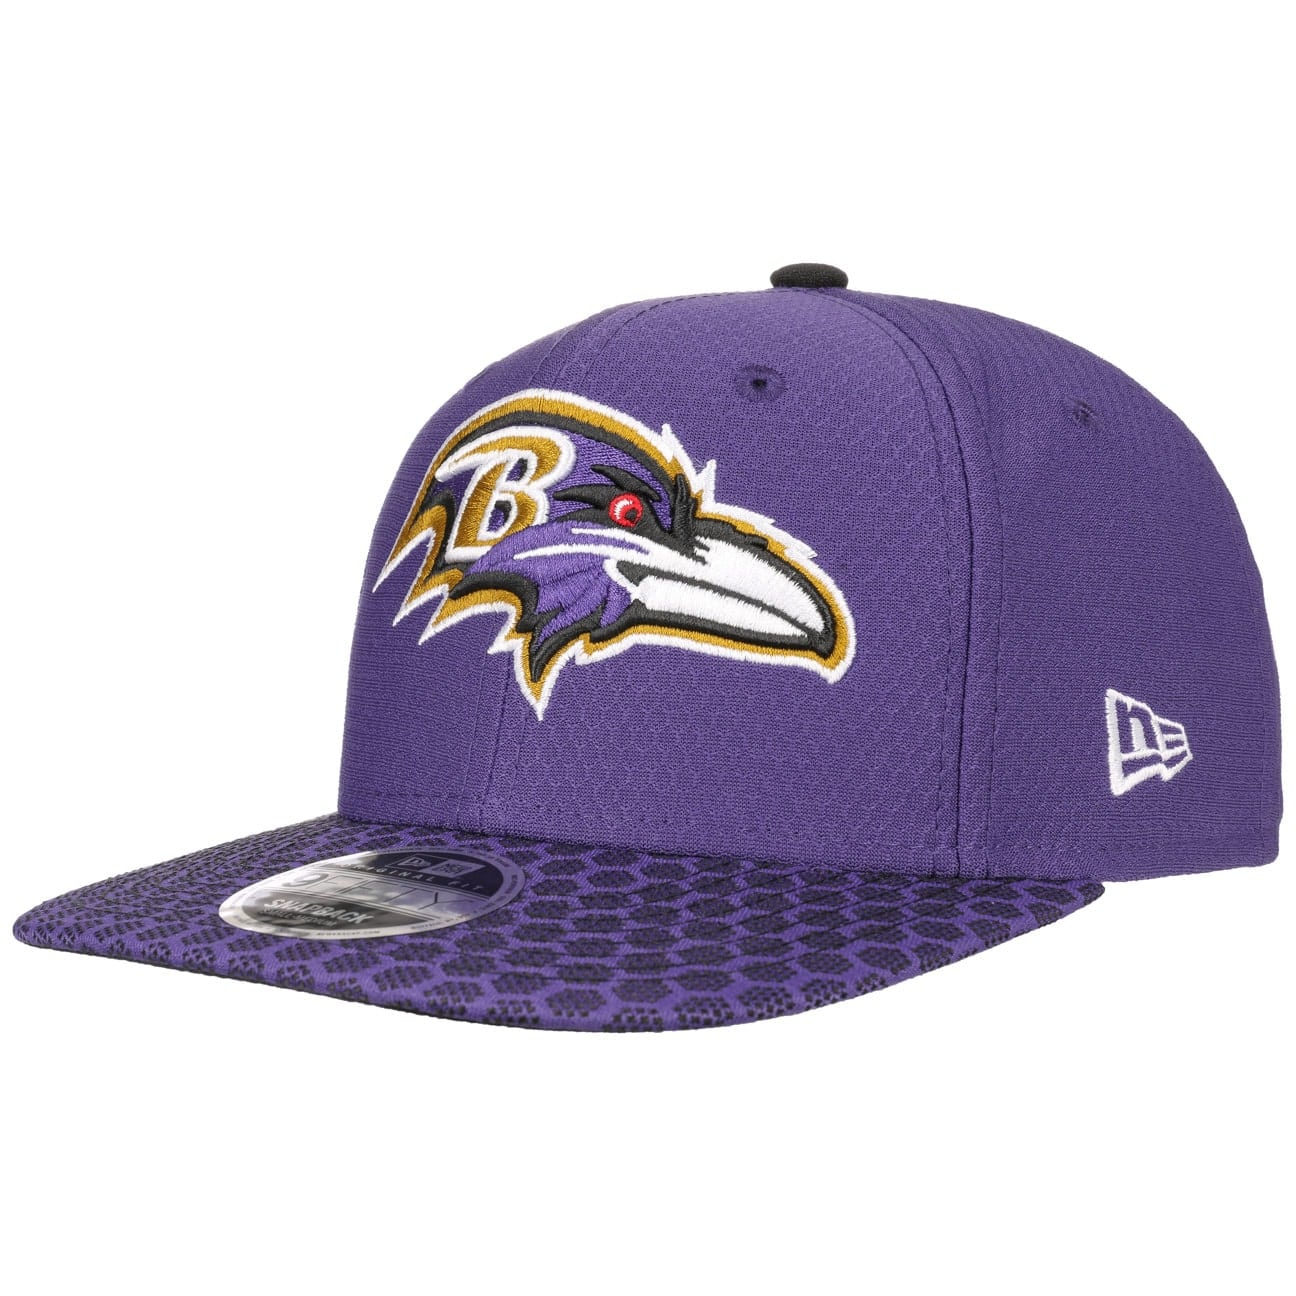 gorra-9fifty-onf-ravens-by-new-era-gorra-de-baseball